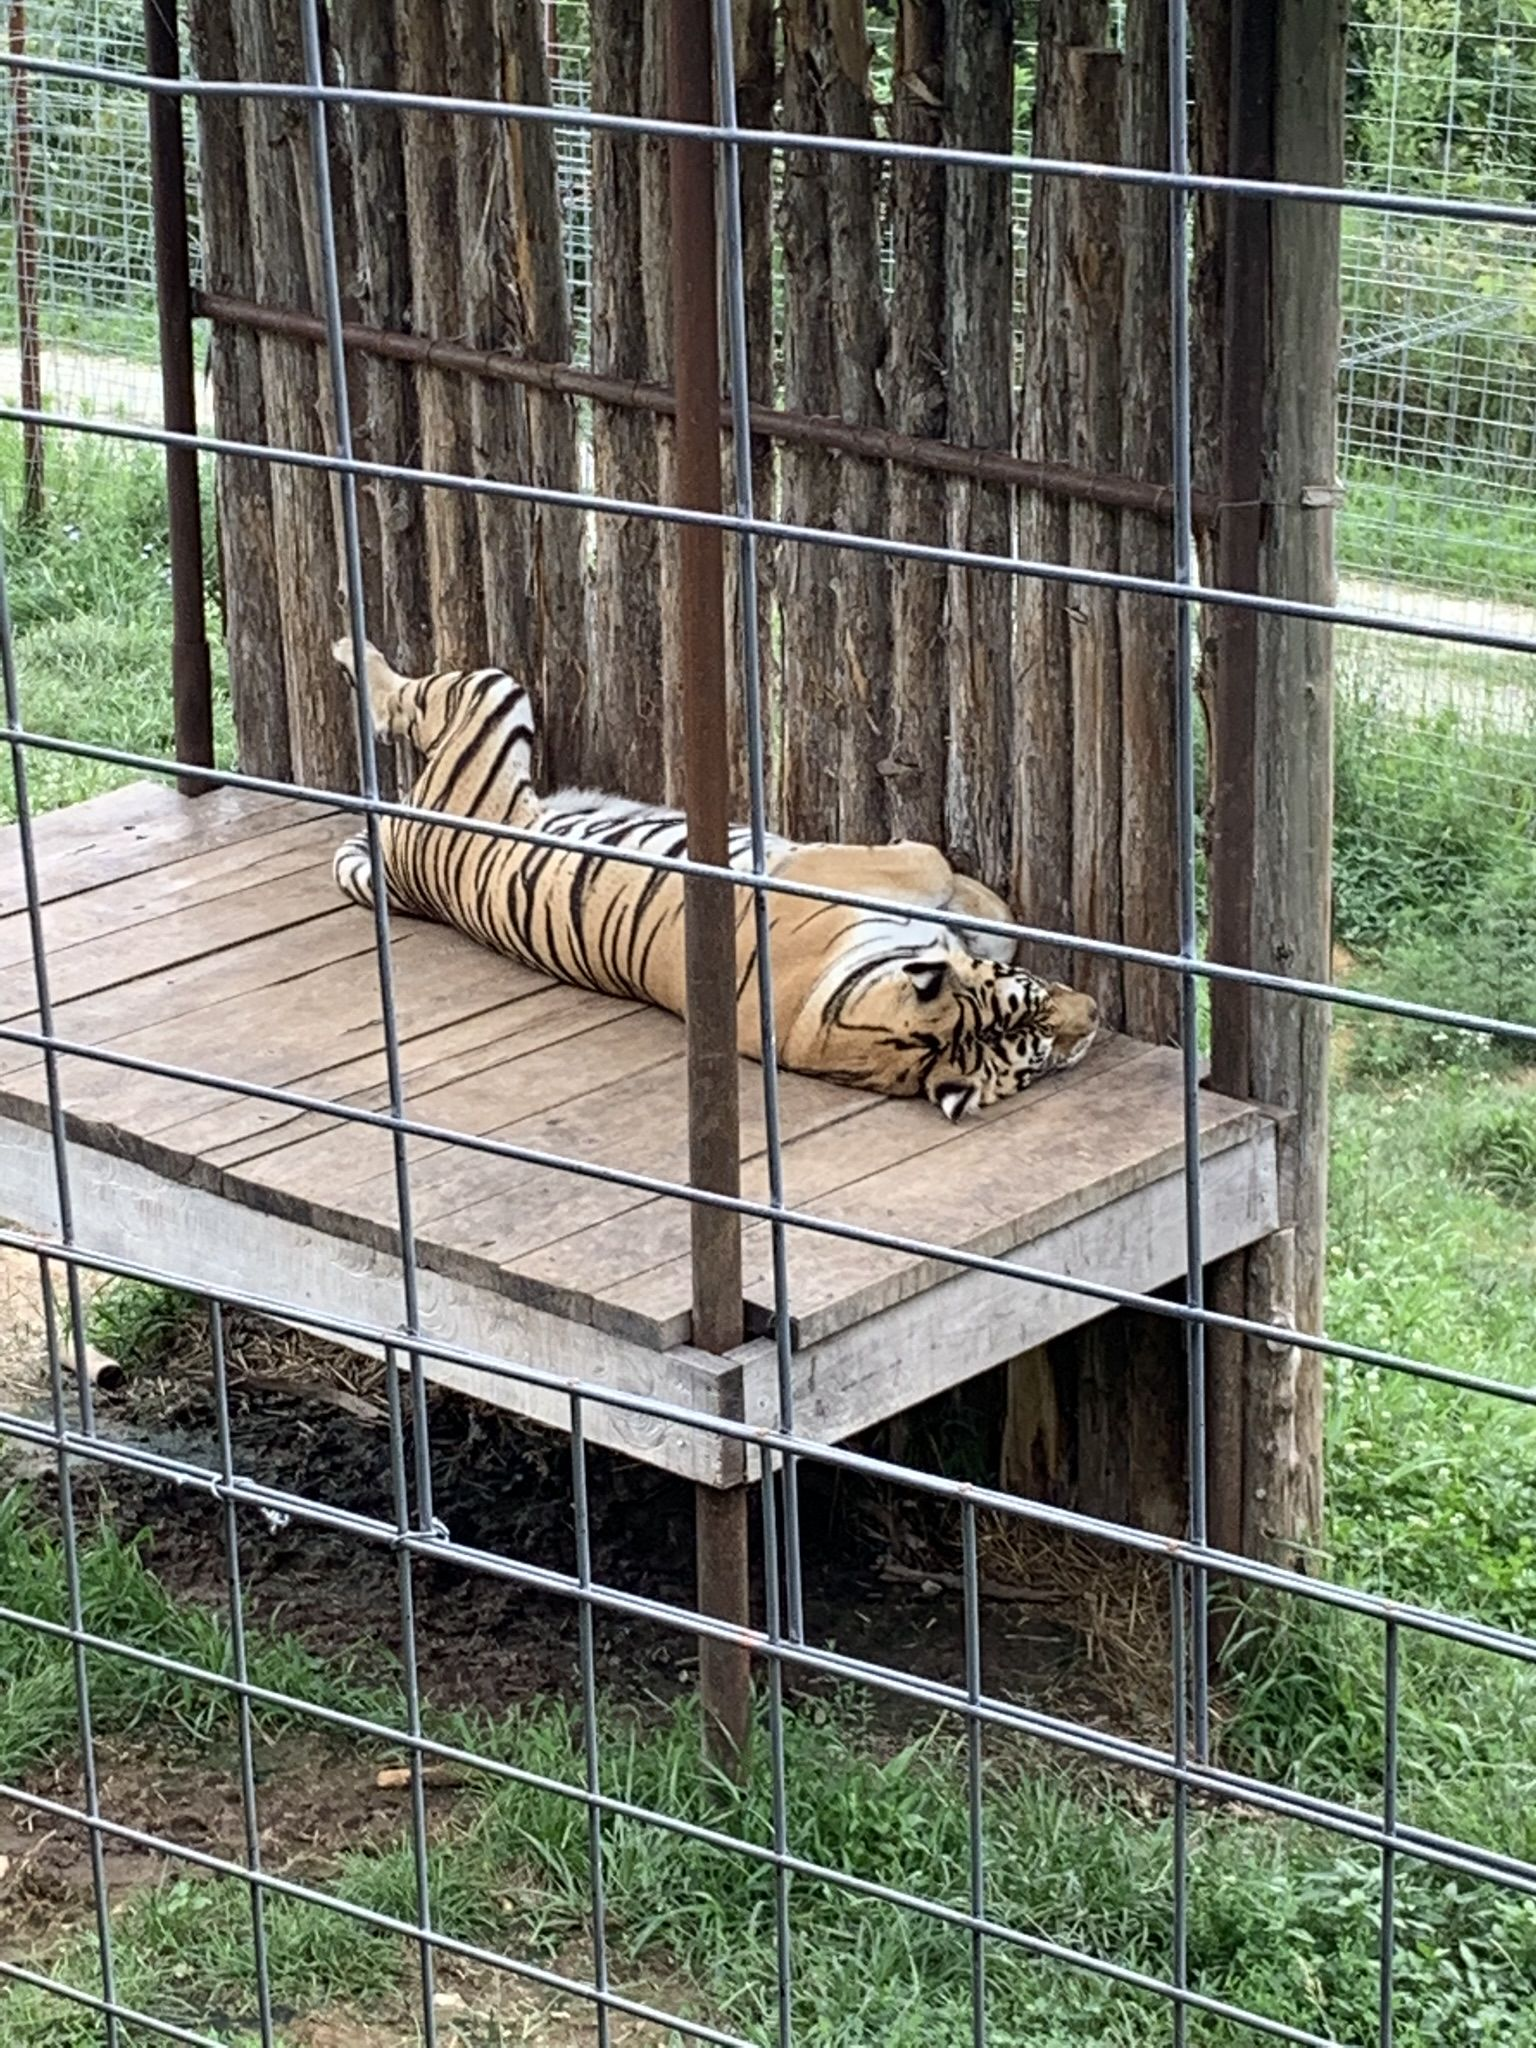 Laying Tiger at National Tiger Sanctuary in Branson